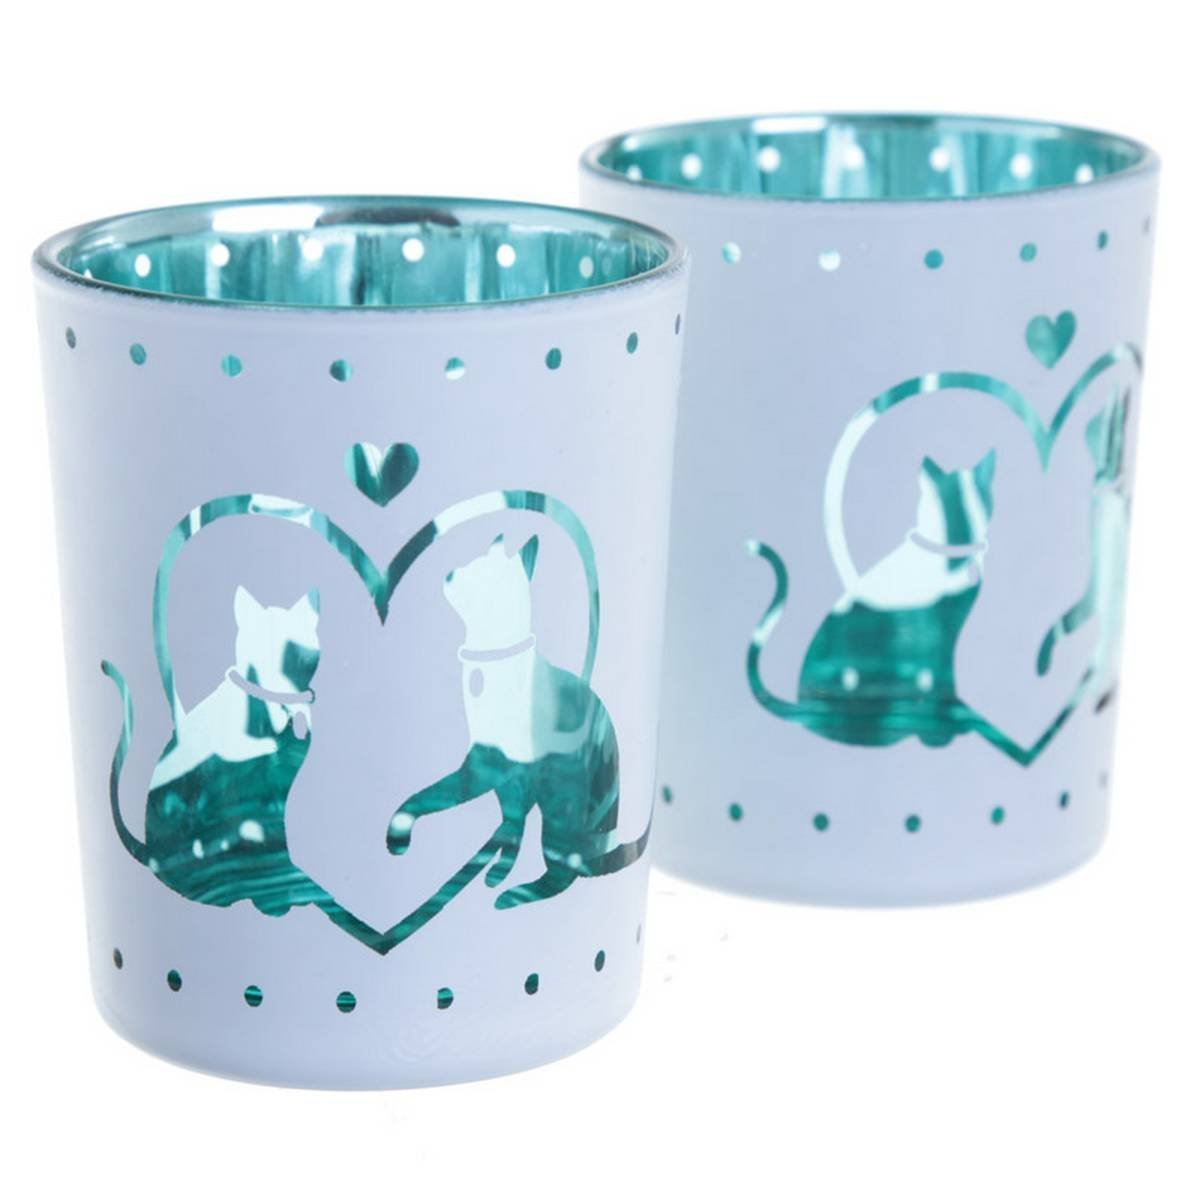 Glass Candleholder Set of 2 - Cat Design Puckator